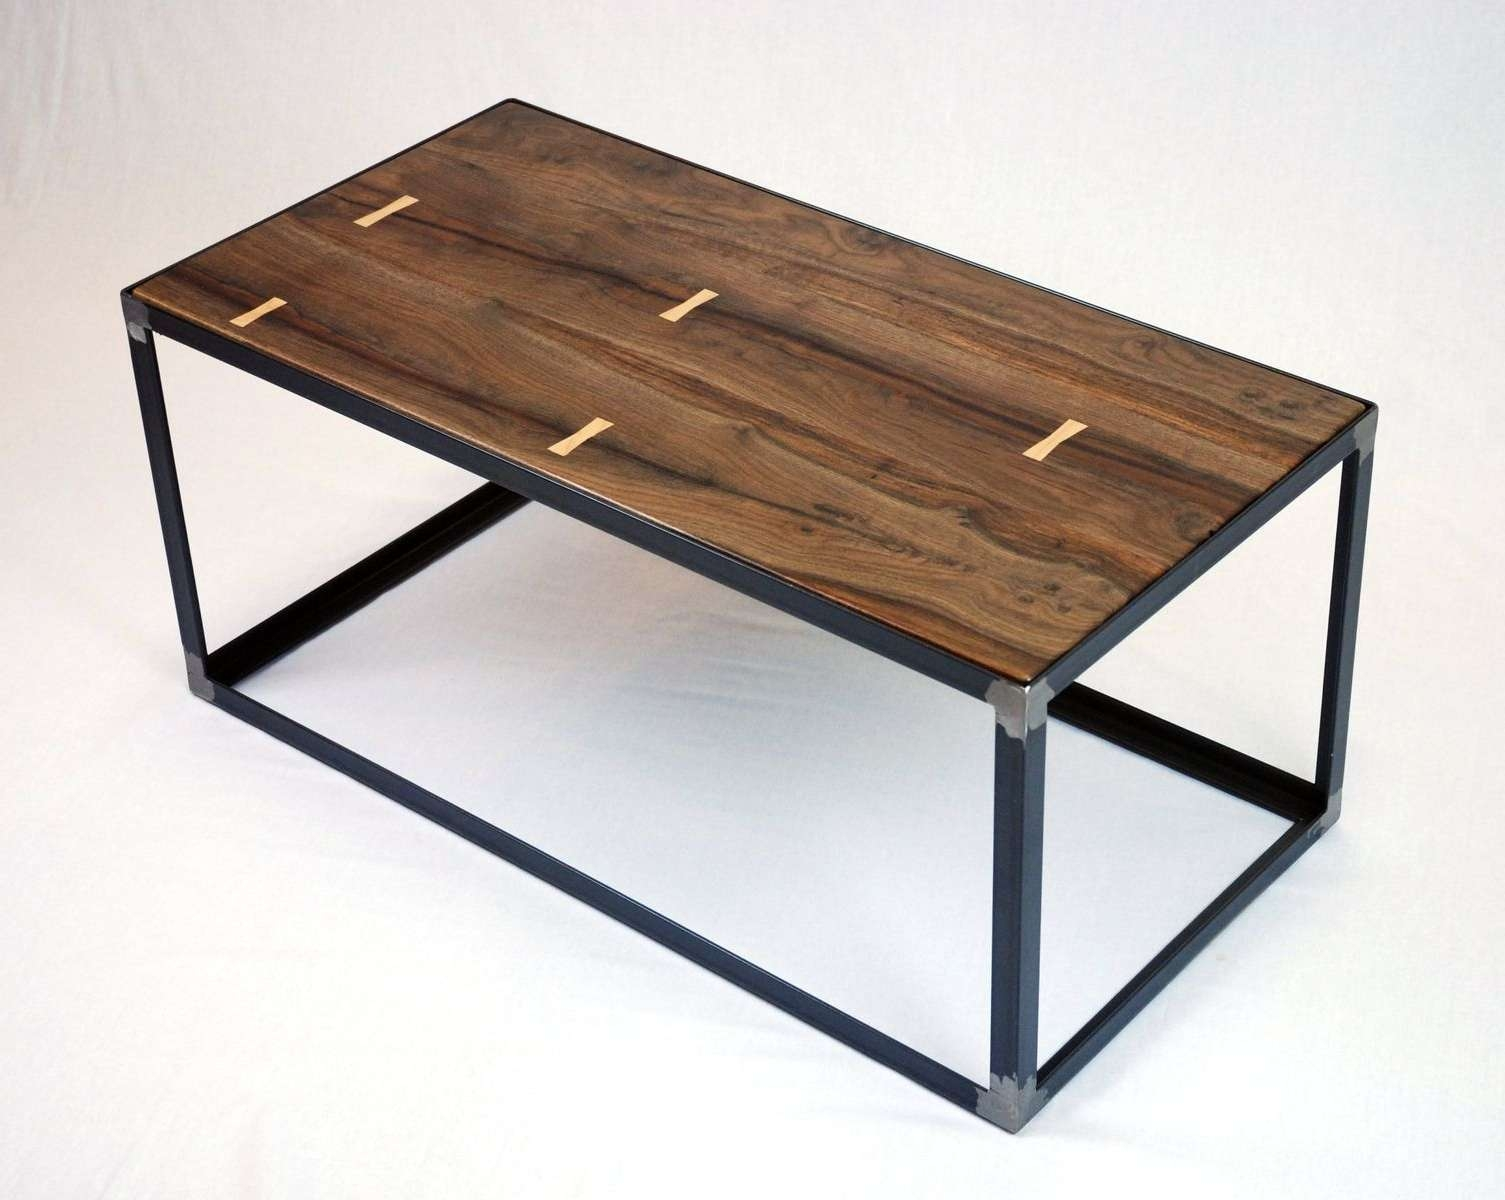 Hand Crafted Salvaged Black Walnut Industrial Coffee Table Within Popular Industrial Coffee Tables (View 10 of 20)